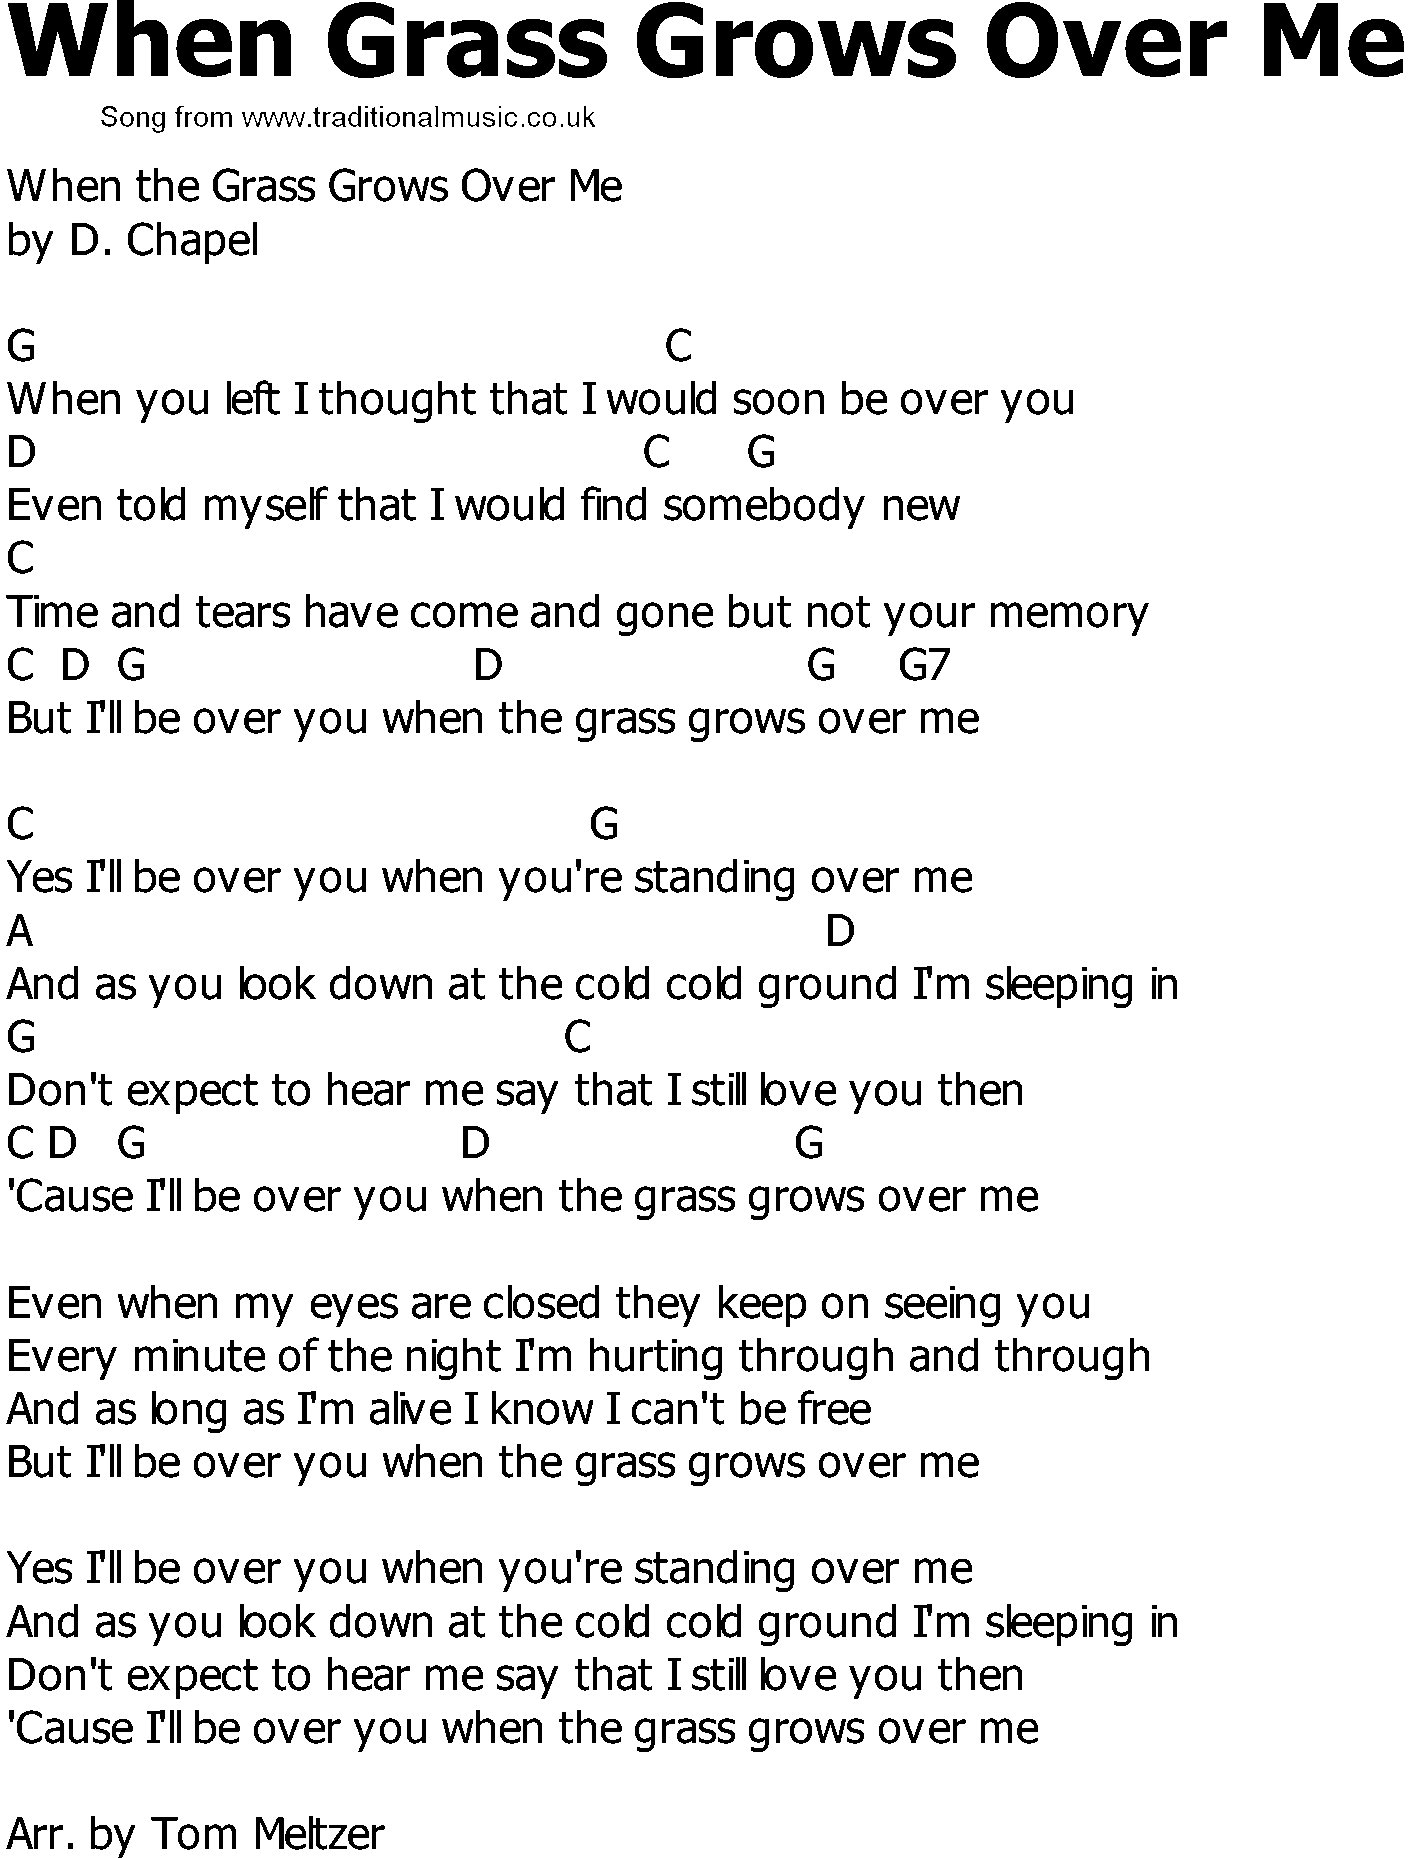 Old Country Song Lyrics With Chords When Grass Grows Over Me